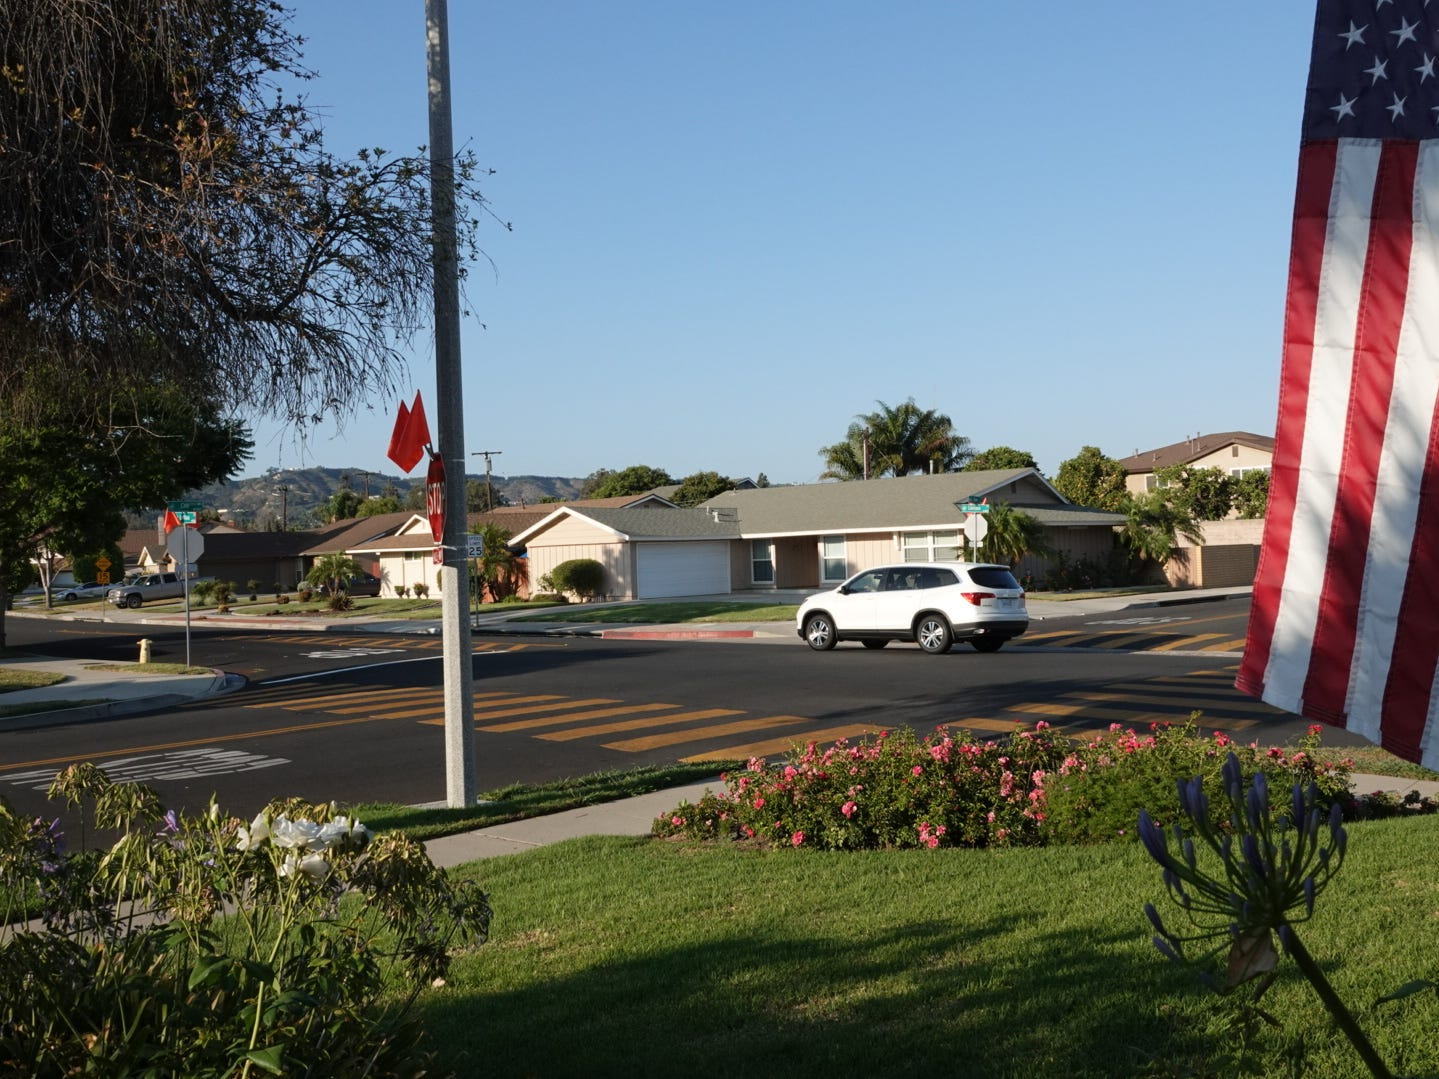 Cars have ended up in Dennis Fandey's yard three times this year alone, the Camarillo resident said. The city recently added four-way stop signs at the intersection of Lantana and Coe streets after years of requests from residents.